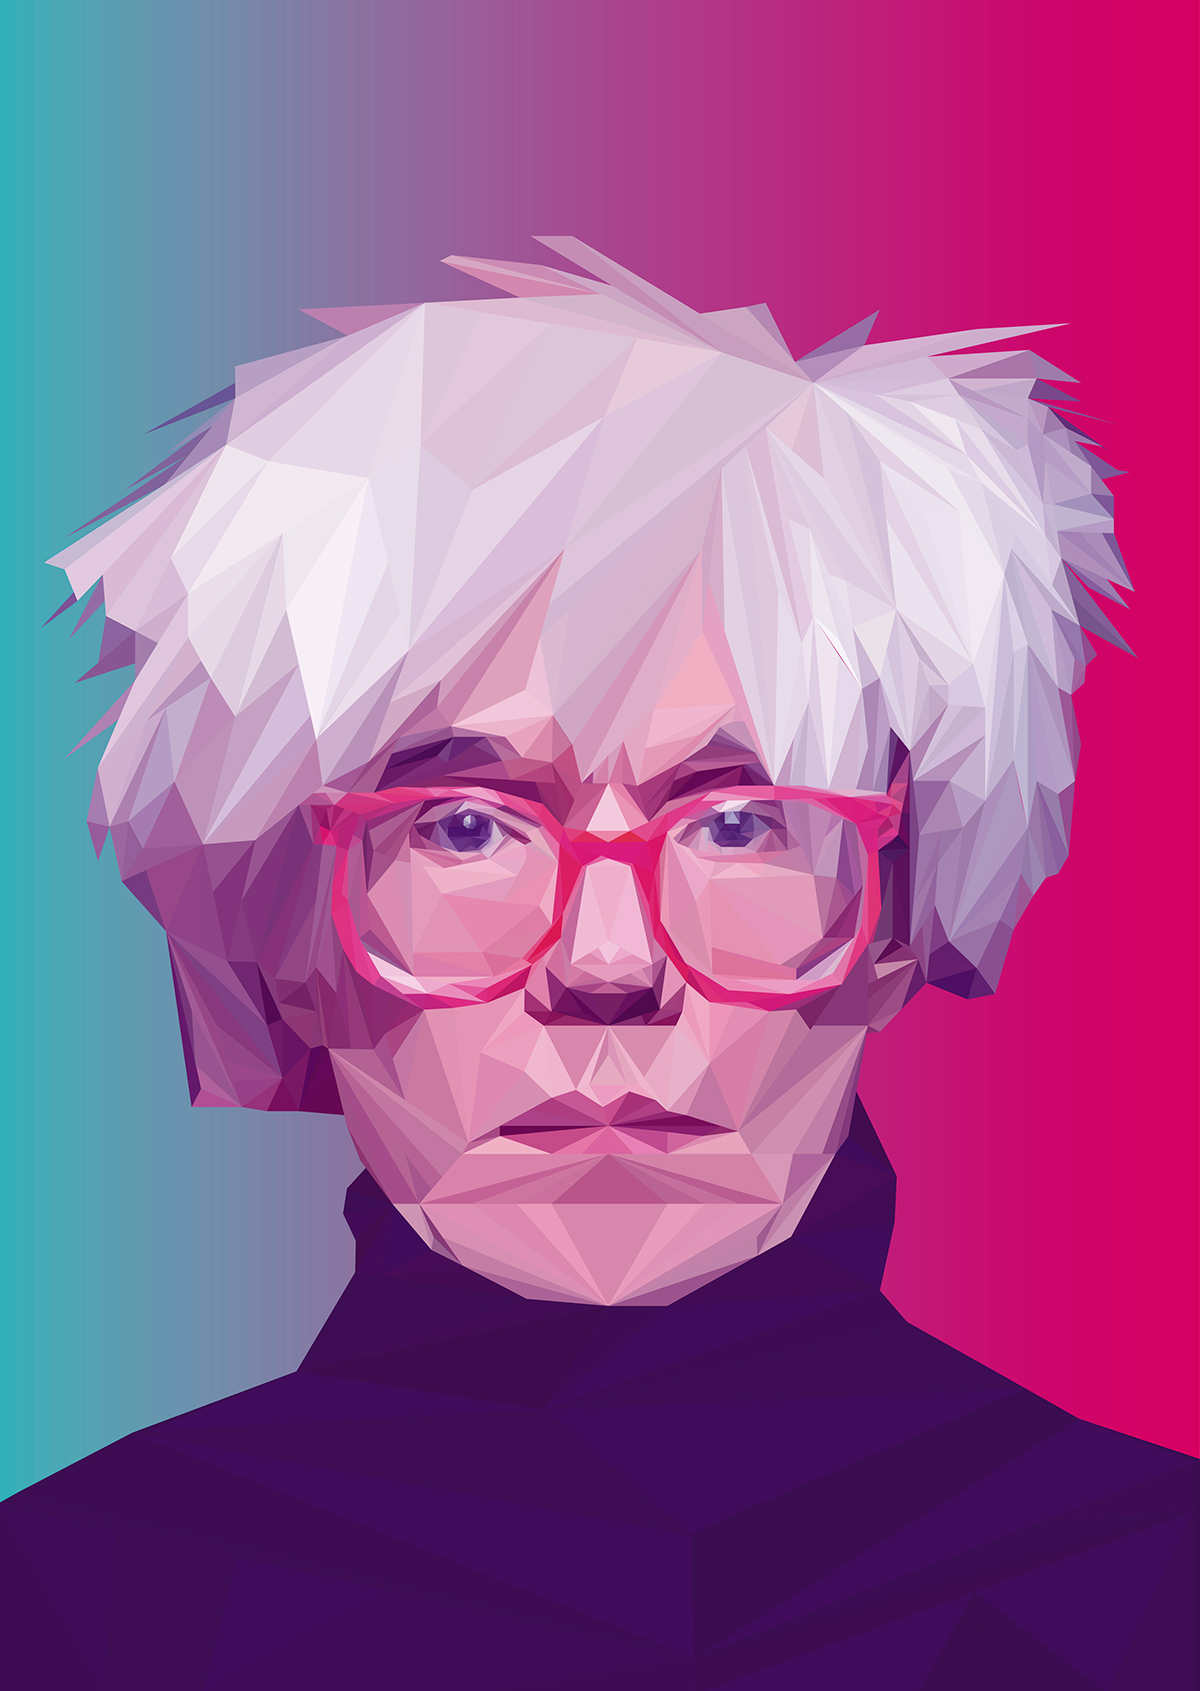 Pop Art His Works Explore The Relationship Between Artistic Expression Celebrity Culture And Advertising That Flourished By 1960s Utilize A